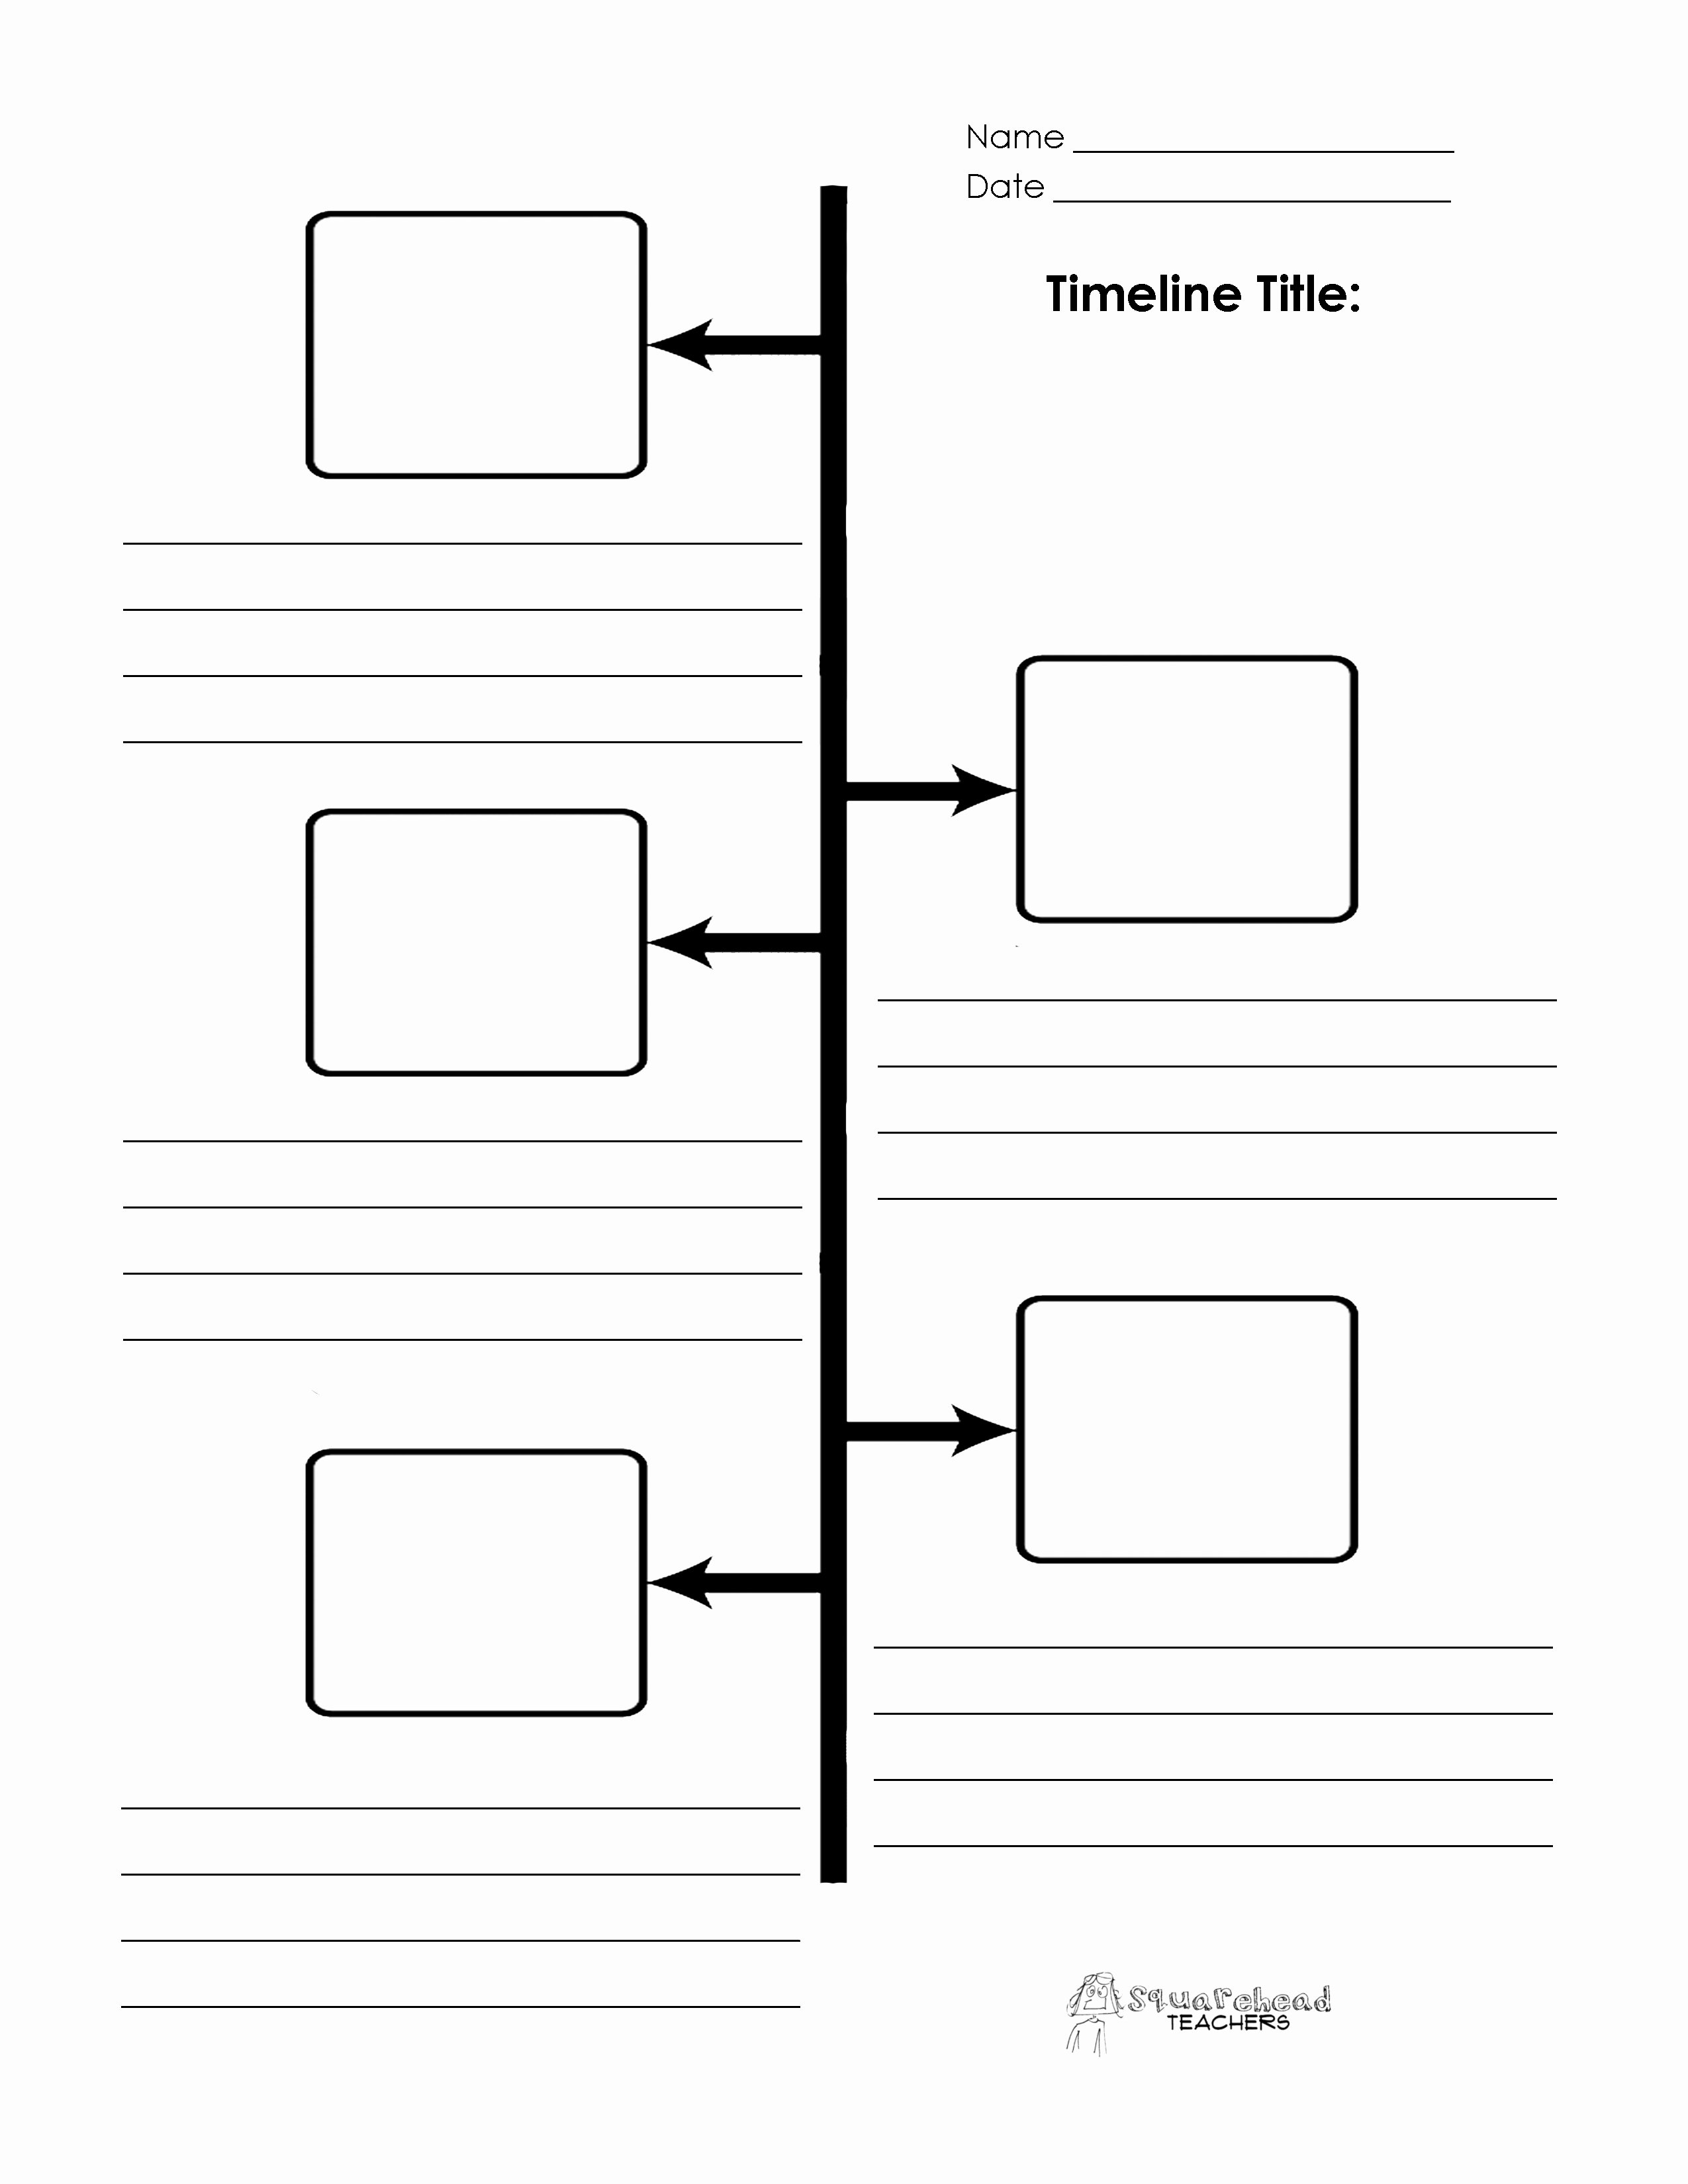 Free Printable Timeline Template Fresh Timeline Boxes and Lines